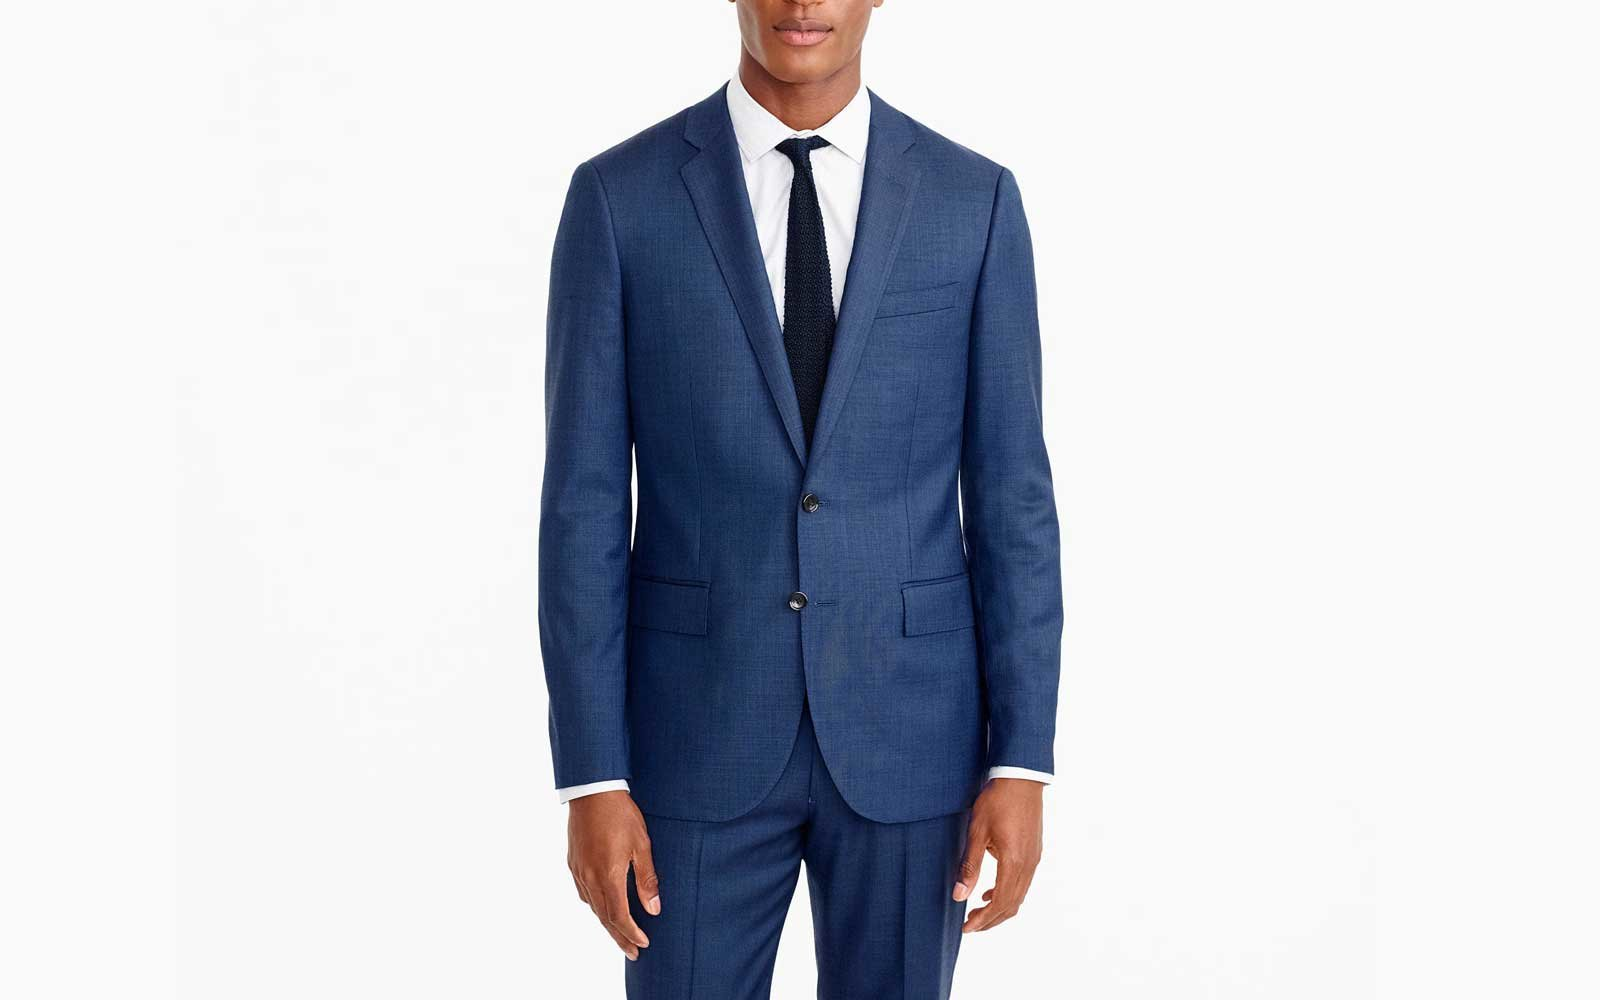 j.crew travel suit